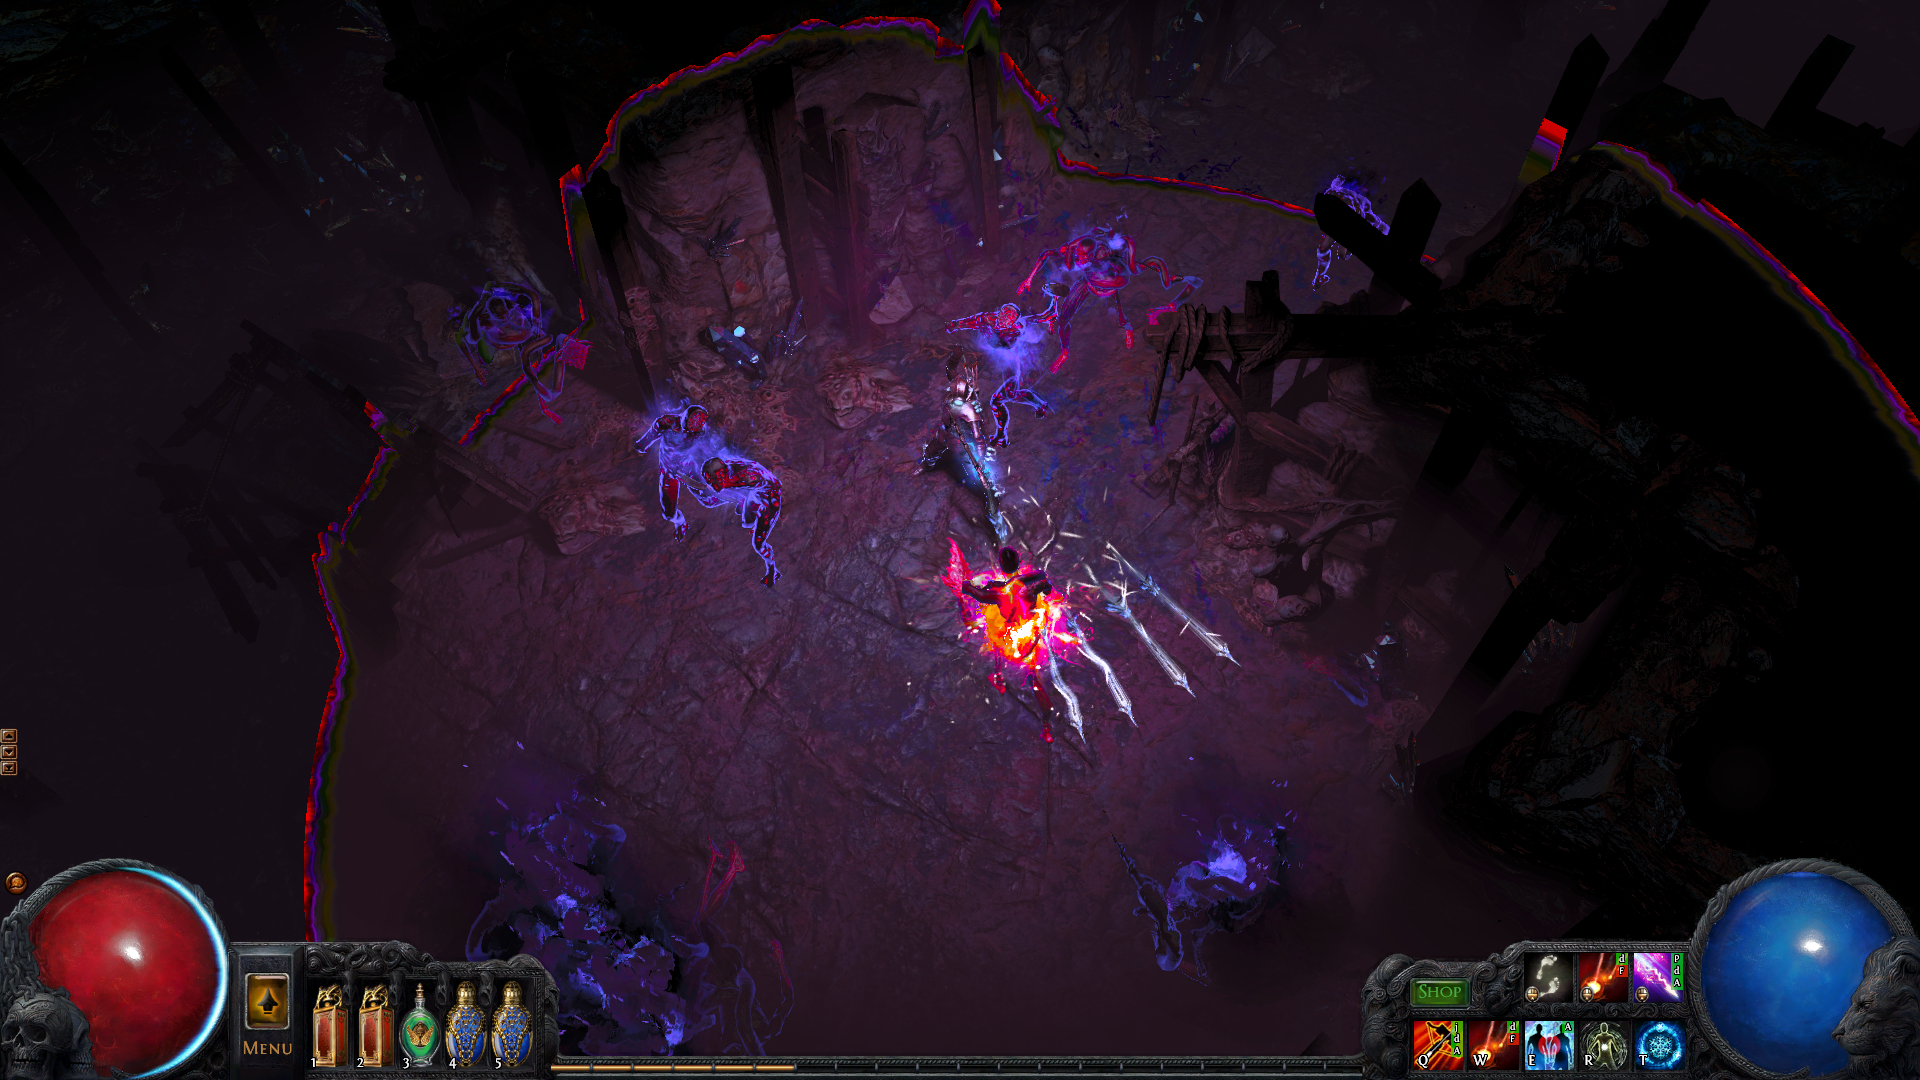 Breaches are coming to Path of Exile in Content Update 2.5.0